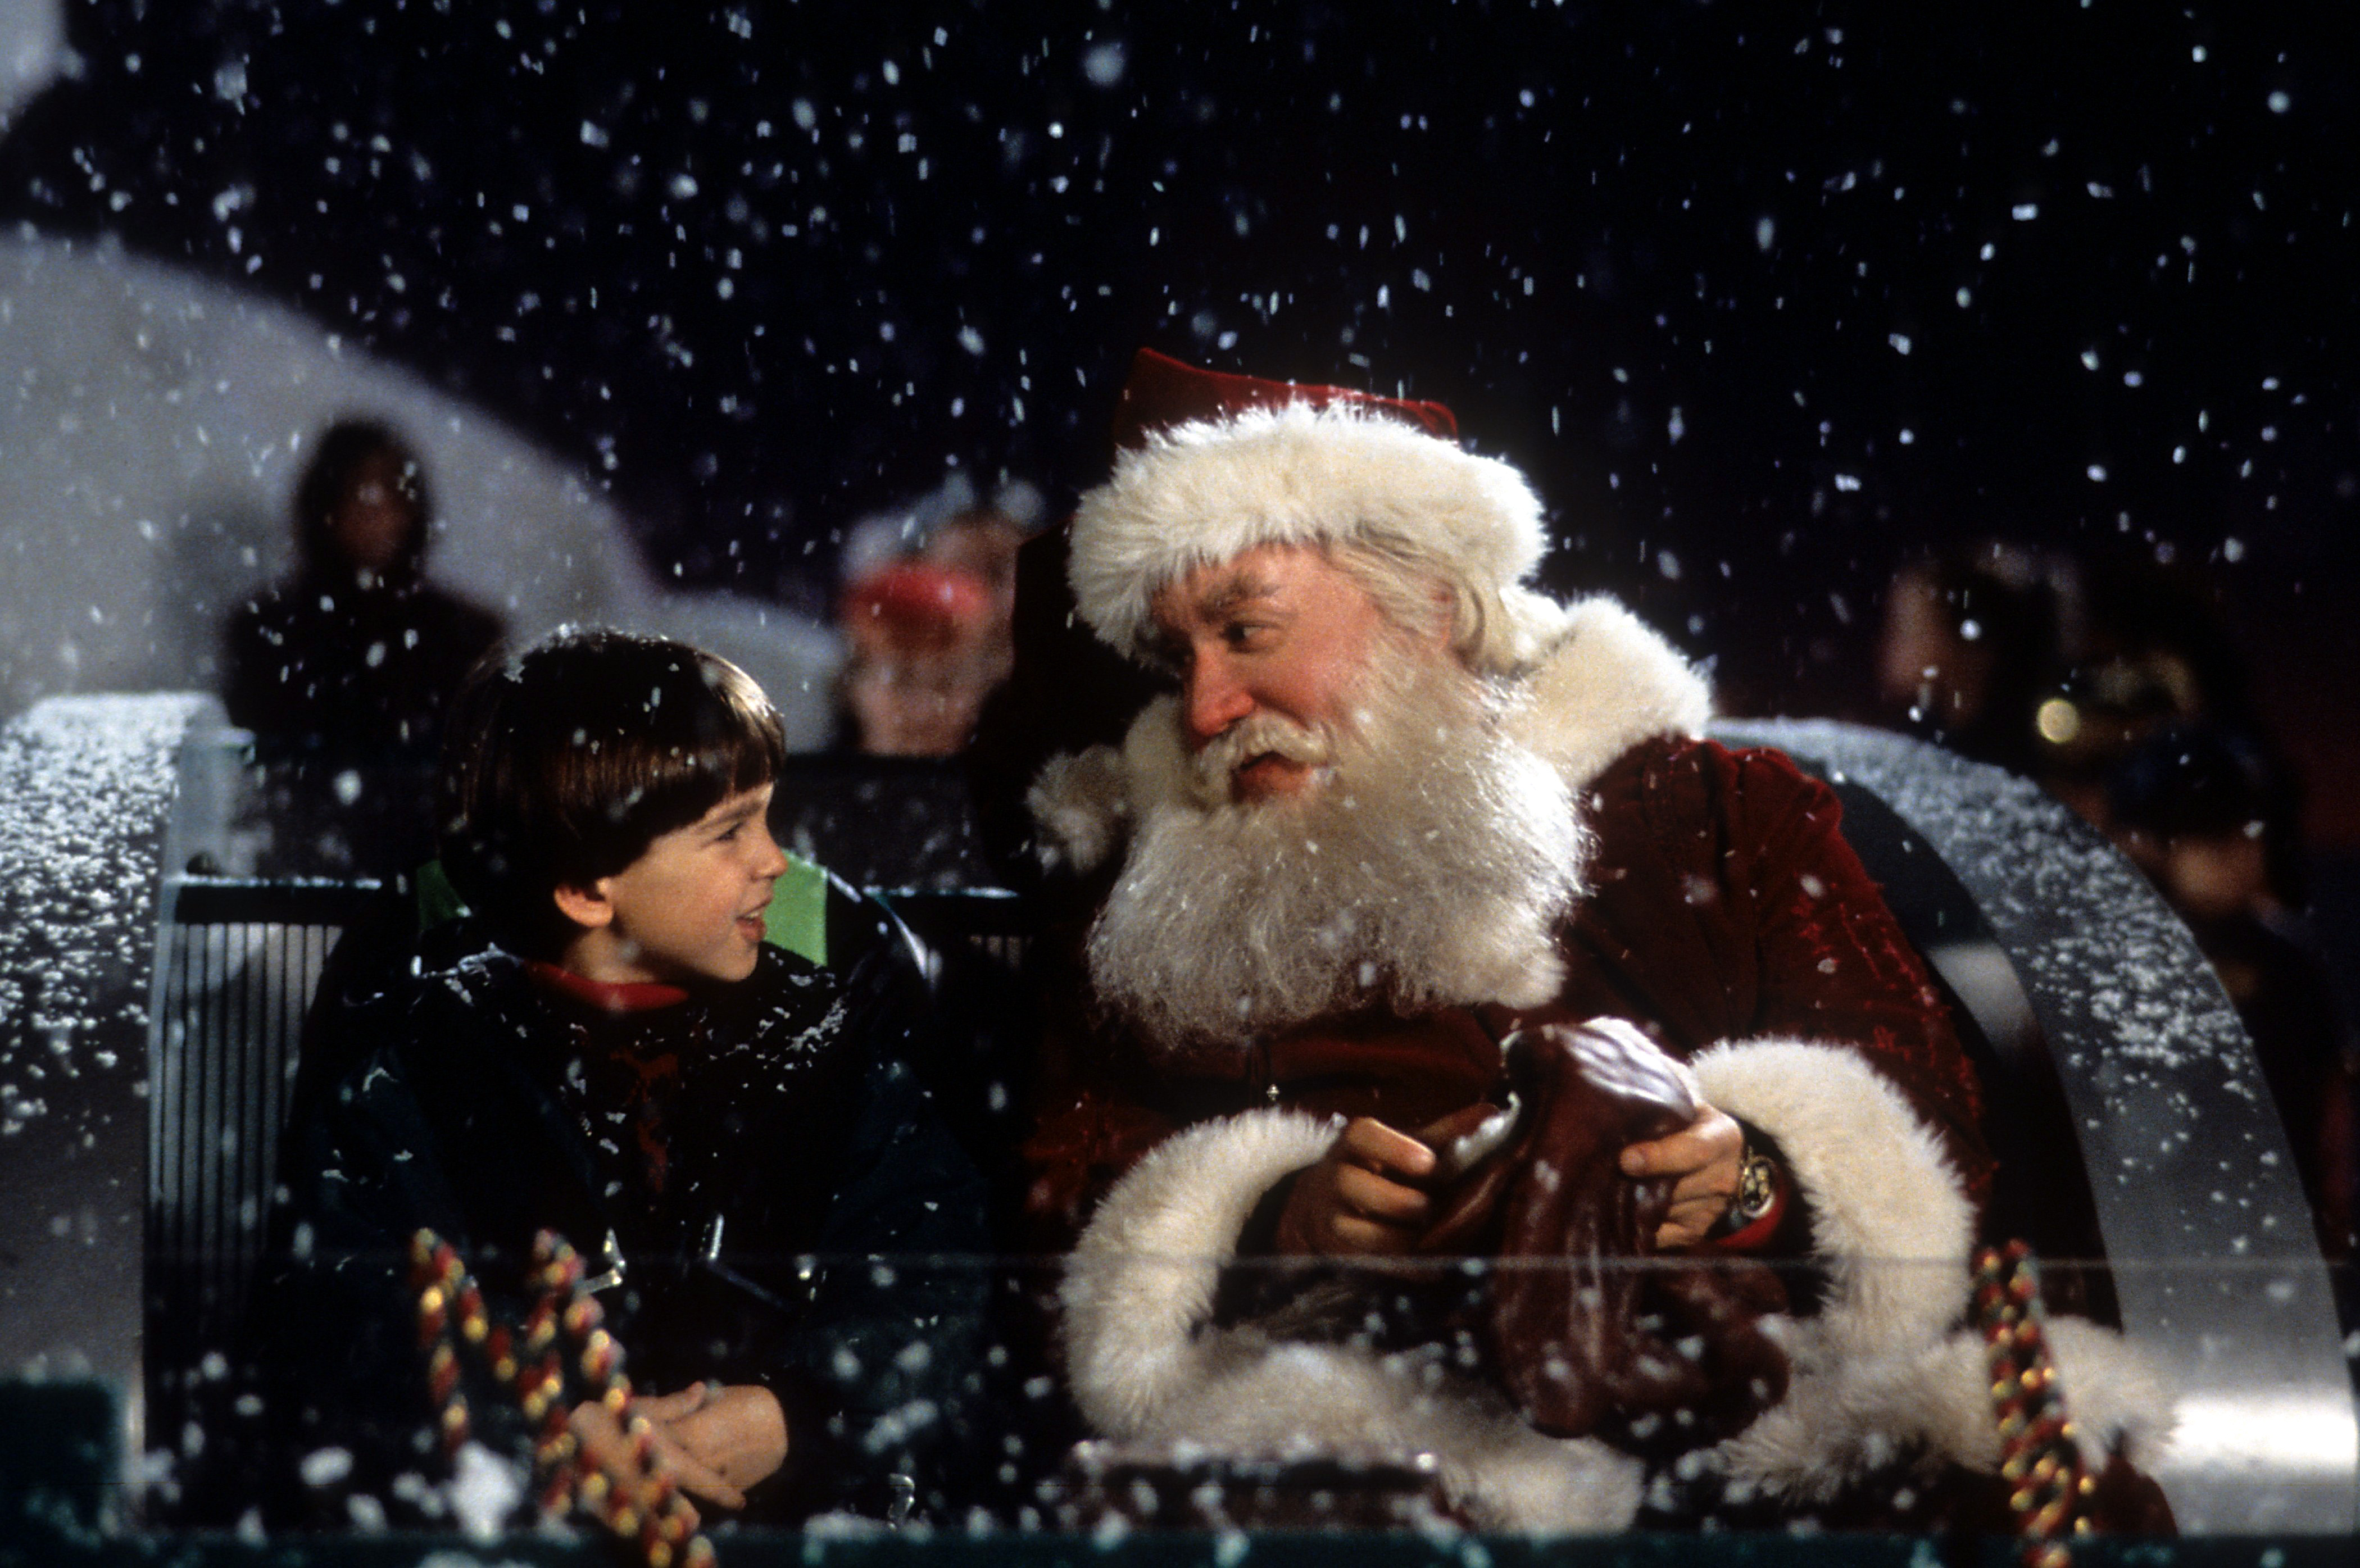 'The Santa Clause' recut as a horror movie is so unbelievably convincing